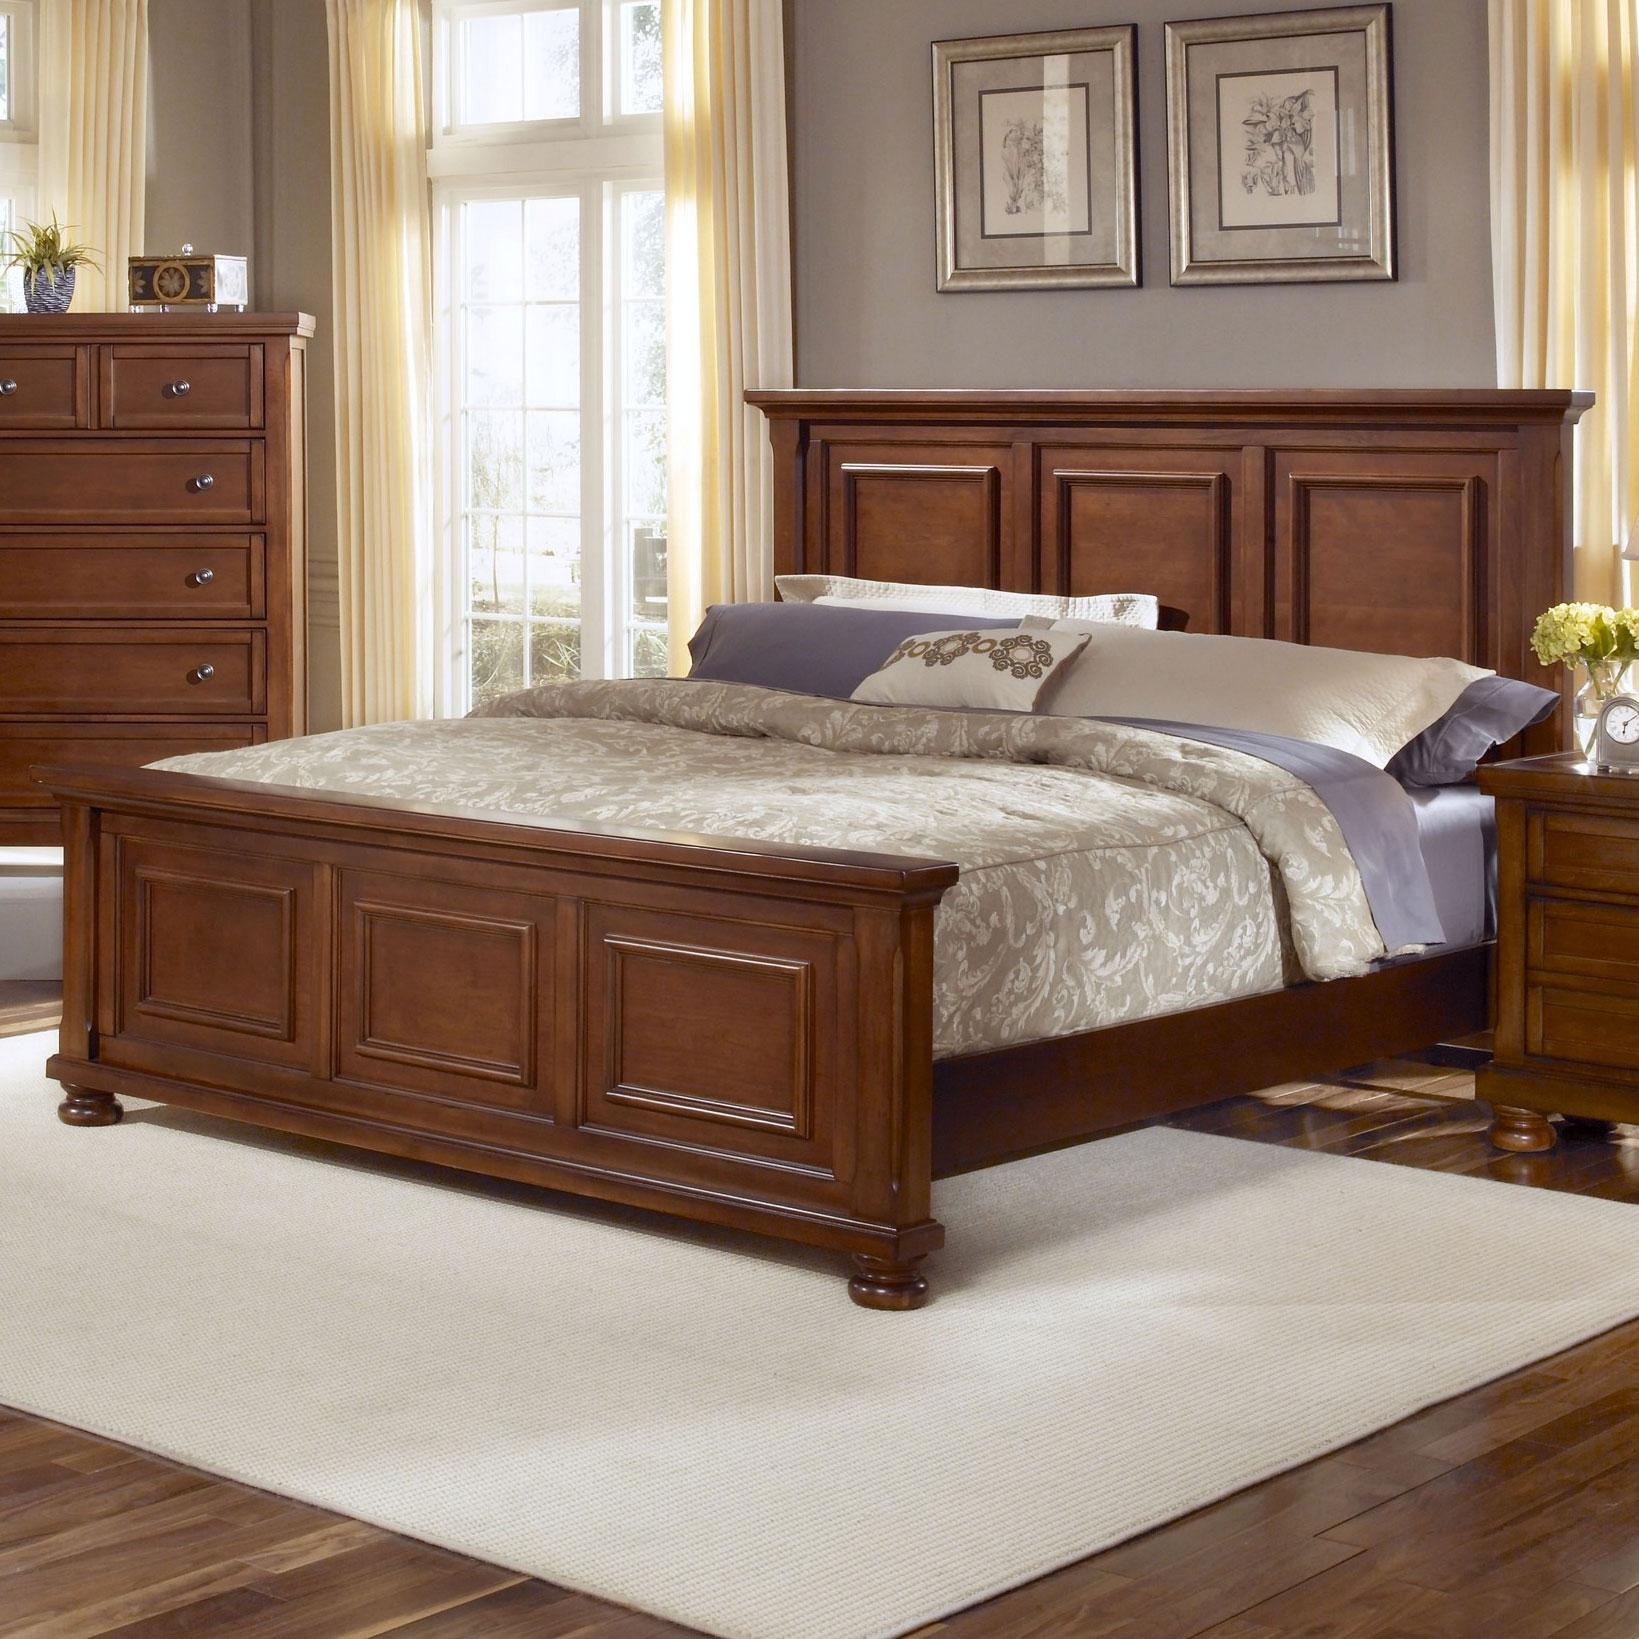 King Mansion Bed By Vaughan Bassett